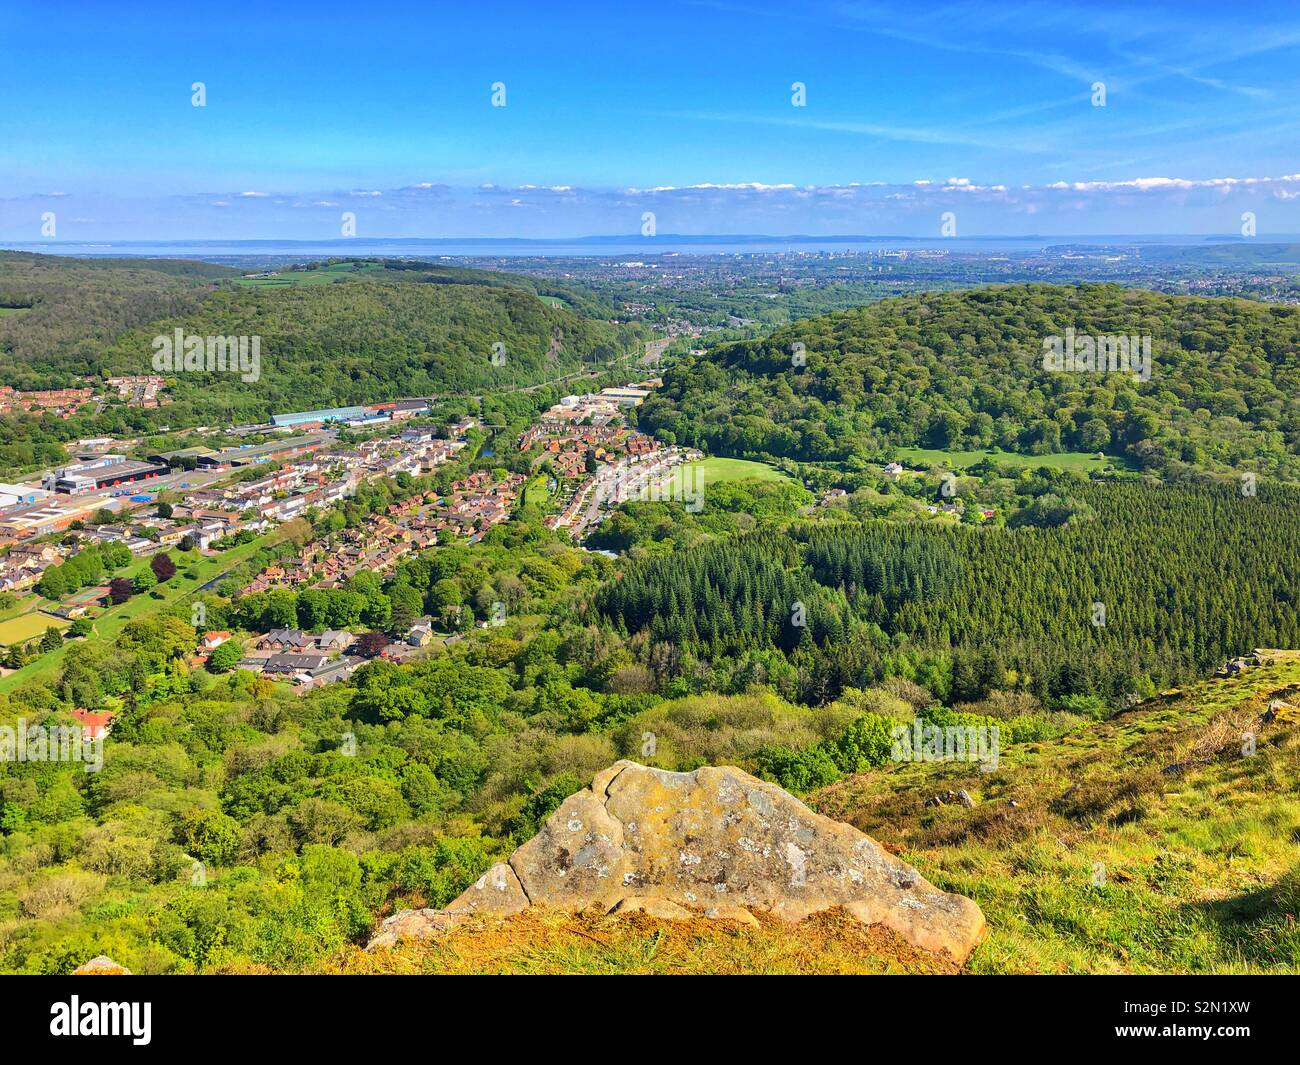 View from the Garth mountain across countryside and Cardiff towards the Bristol Channel, May. - Stock Image